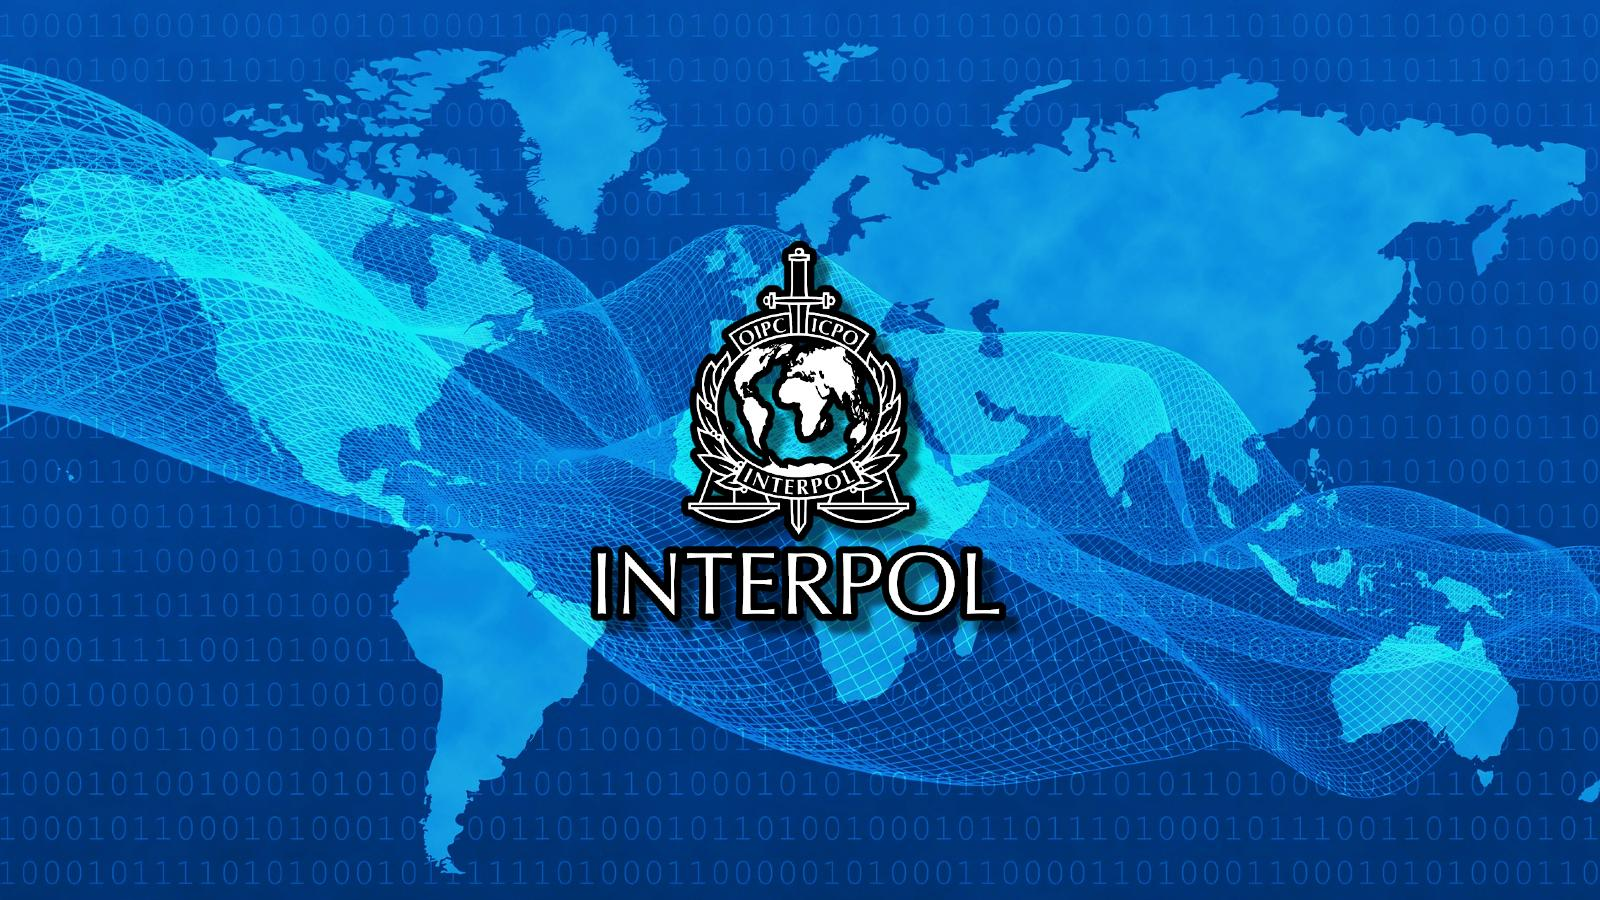 Interpol urges police to unite against 'potential ransomware pandemic'